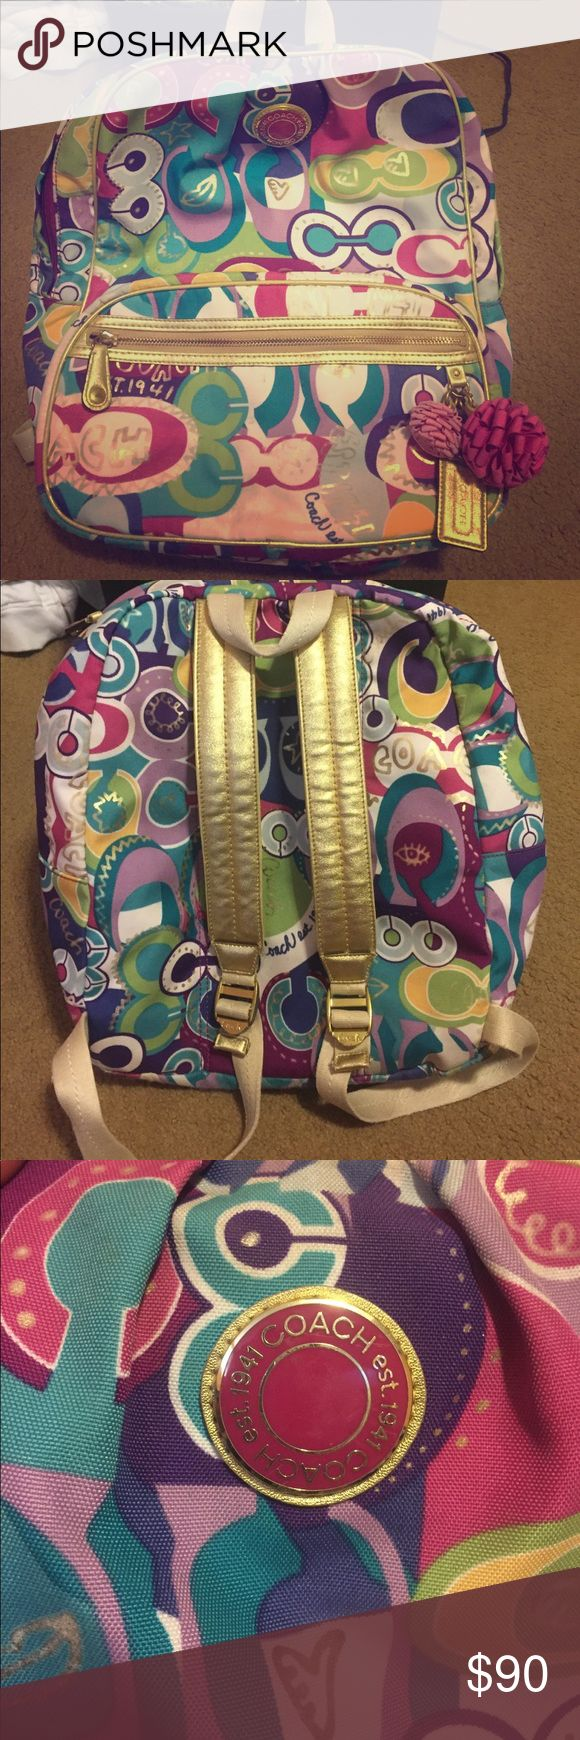 """Coach Poppy Backpack Super cute Coach backpack! It's a little worn but still in good condition! One of the zippers broke off and I never got around to getting it fixed (one zipper worked just fine for me), but I left the pieces in the front pocket in case you want to fix it. Care card is in inside pocket as well. The last picture is with my 16"""" laptop inside of it to give you an idea of how big it is. Coach Bags Backpacks"""